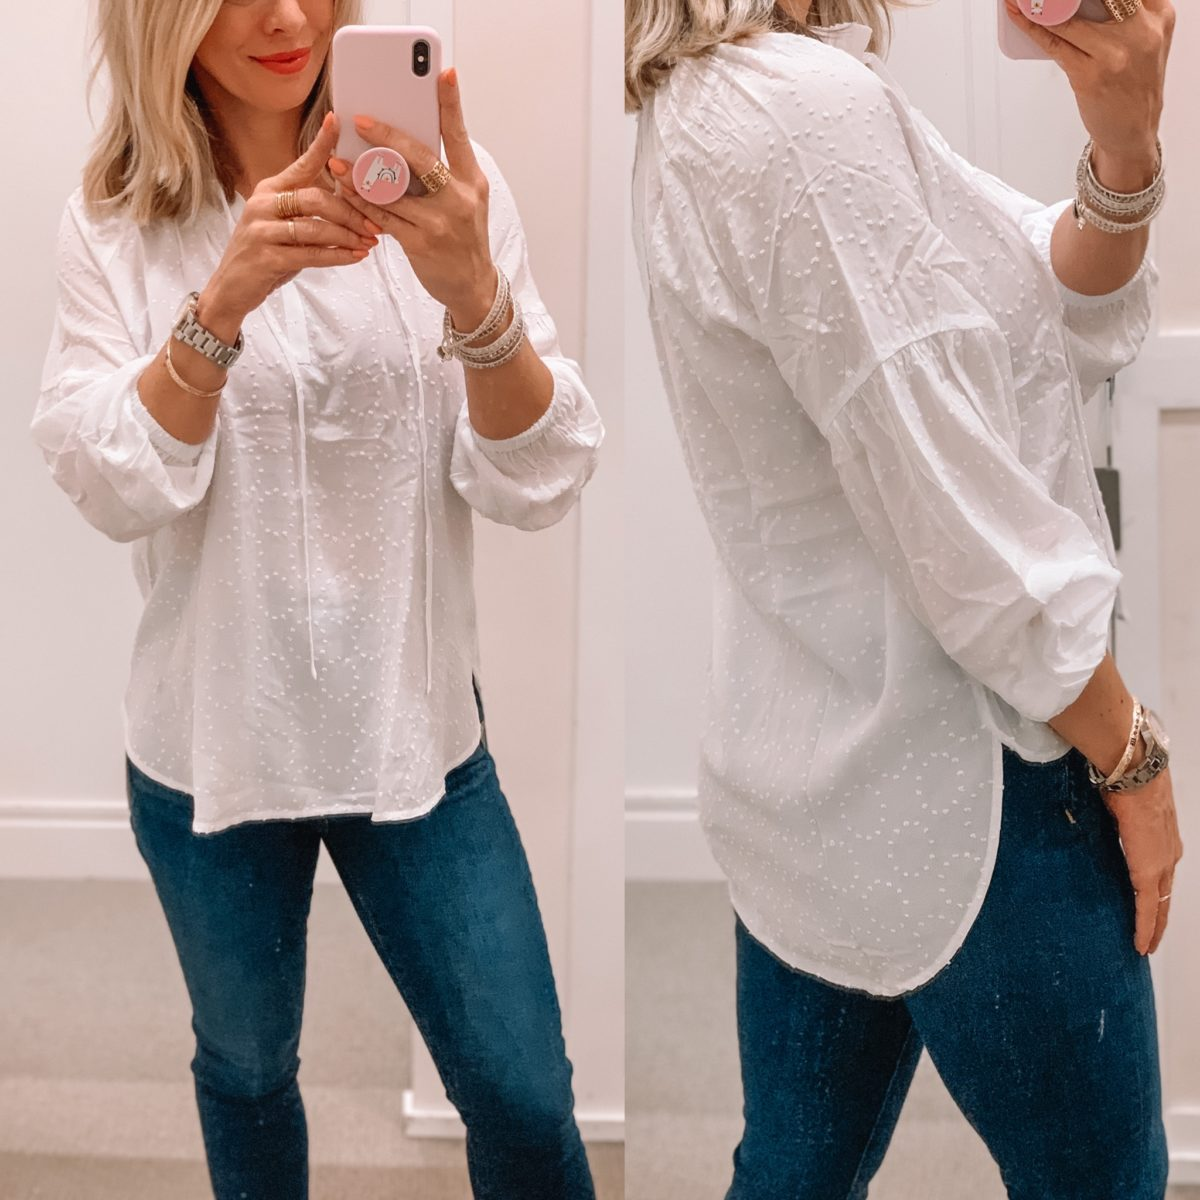 Clip Dot Split Neck Top, Skinny Jeans